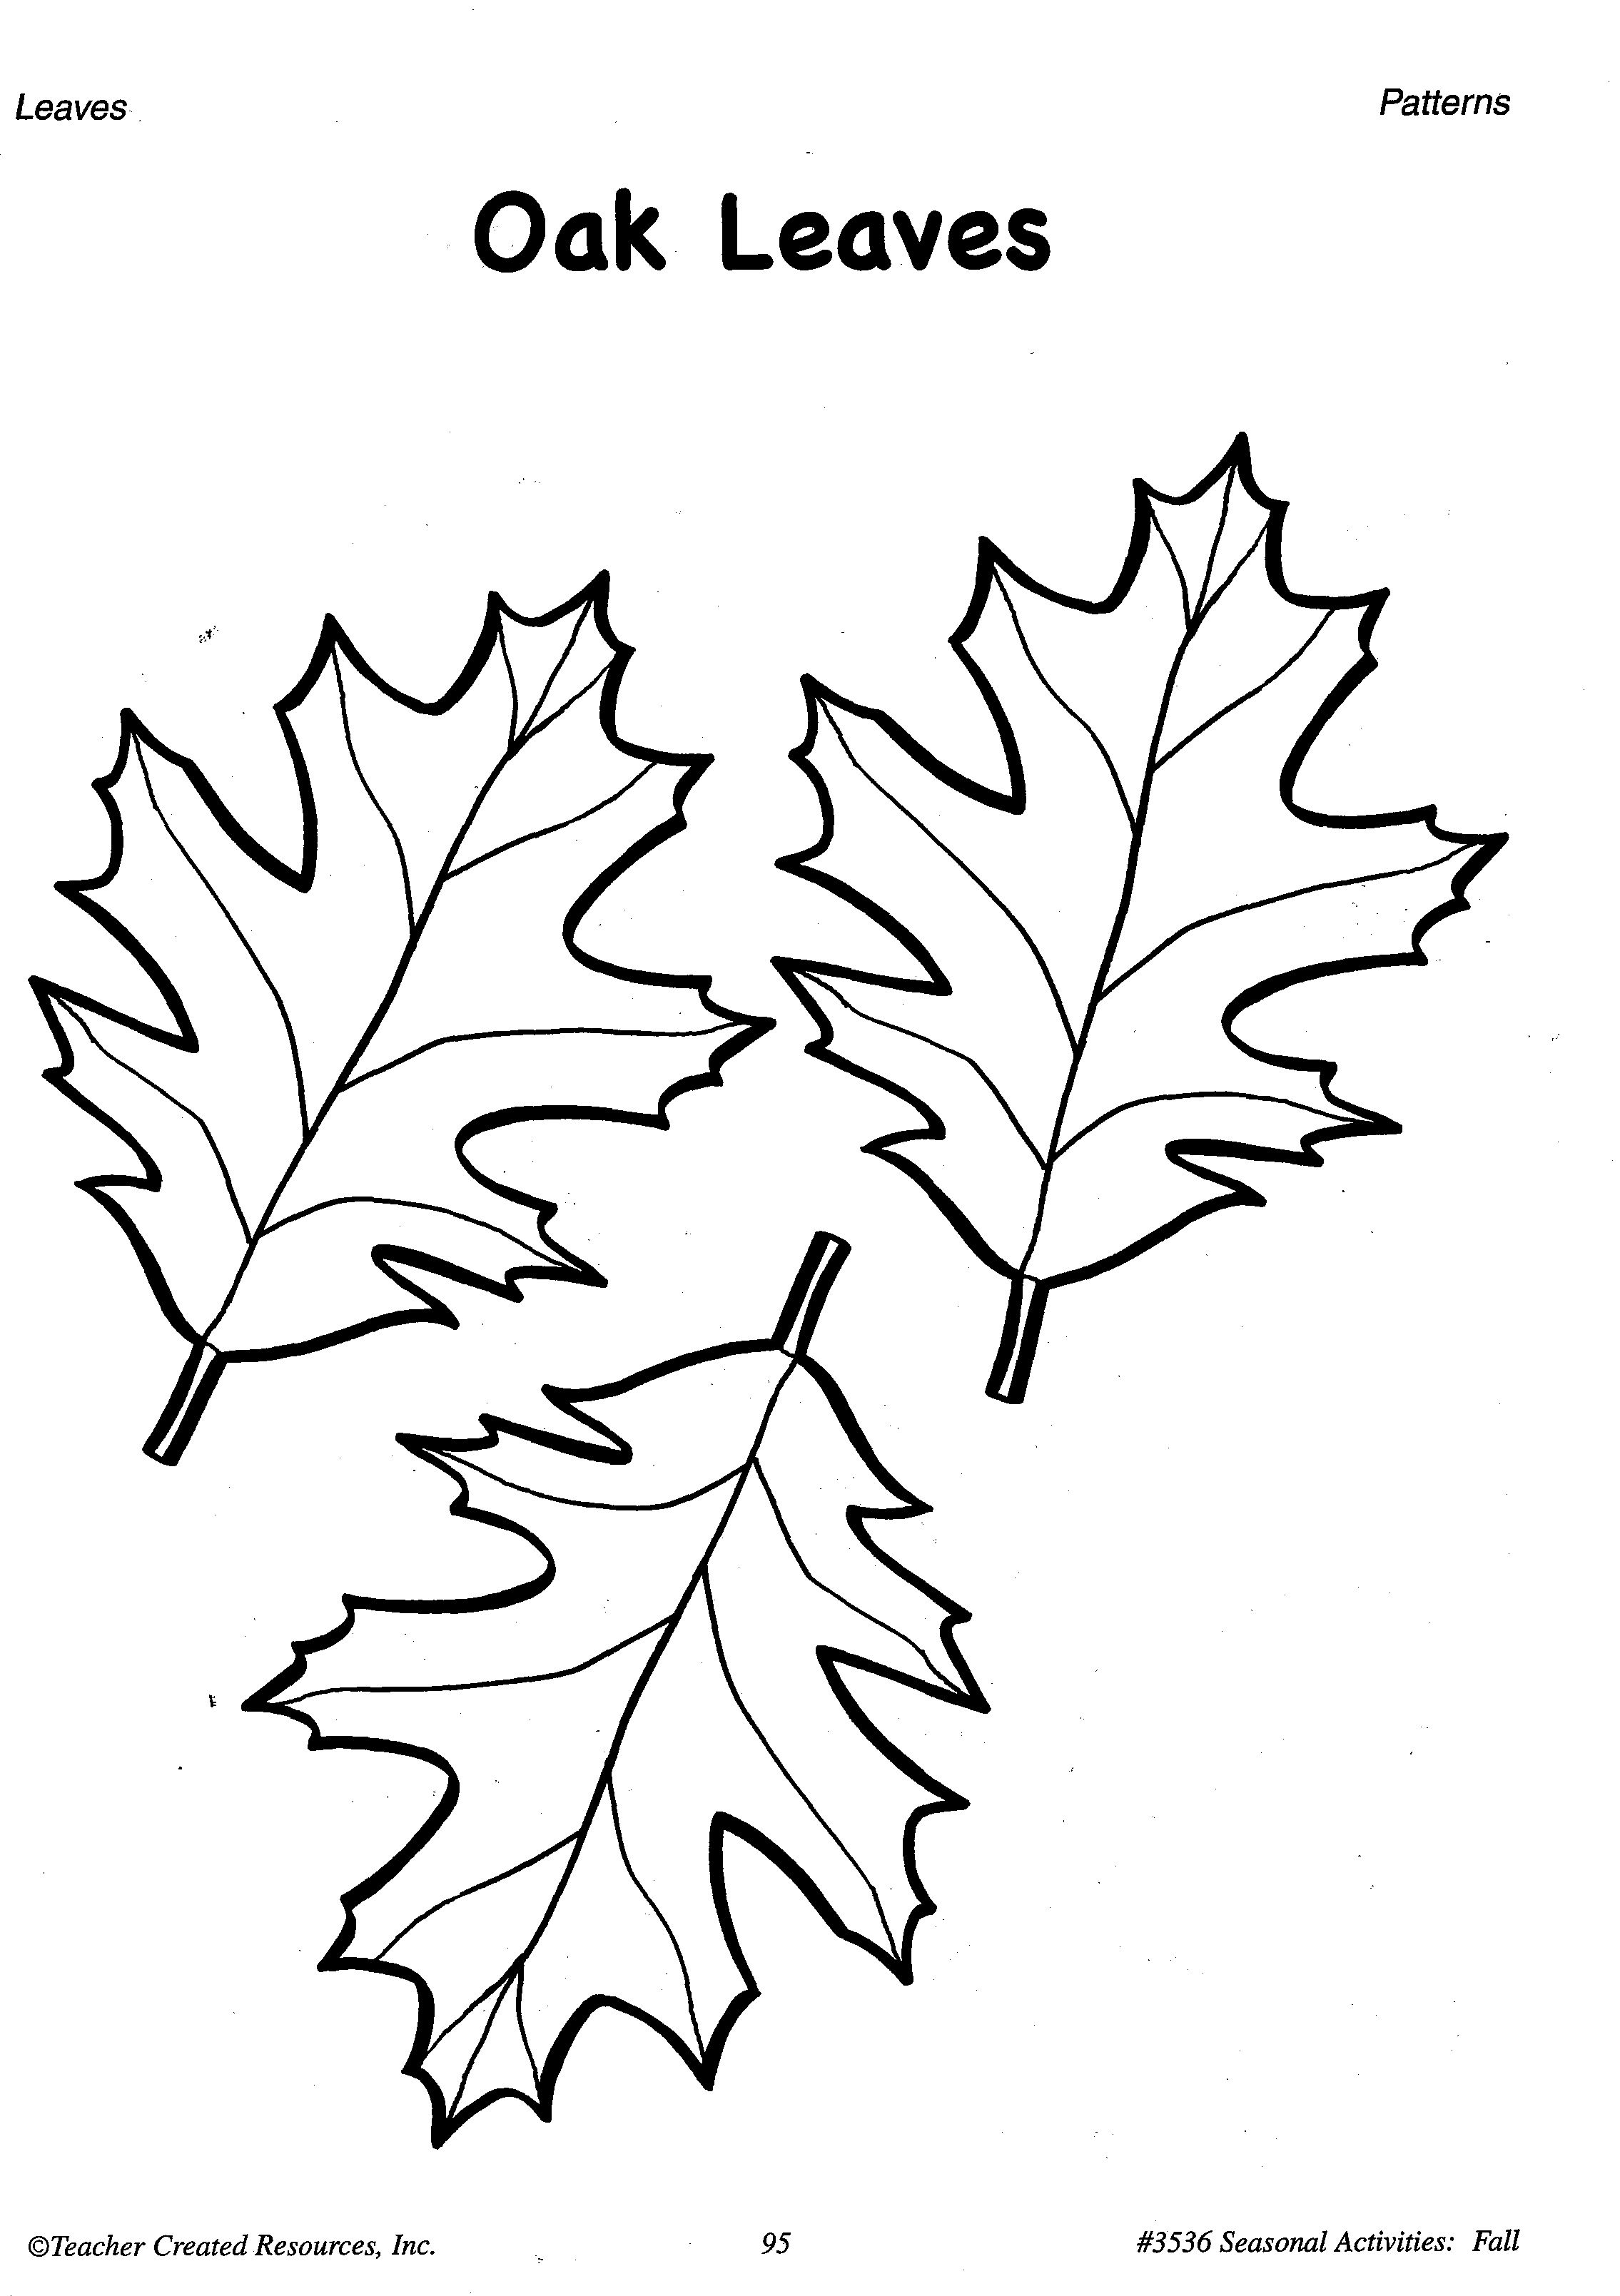 Printable Fall Leaves Patterns A Sample From The Teacher